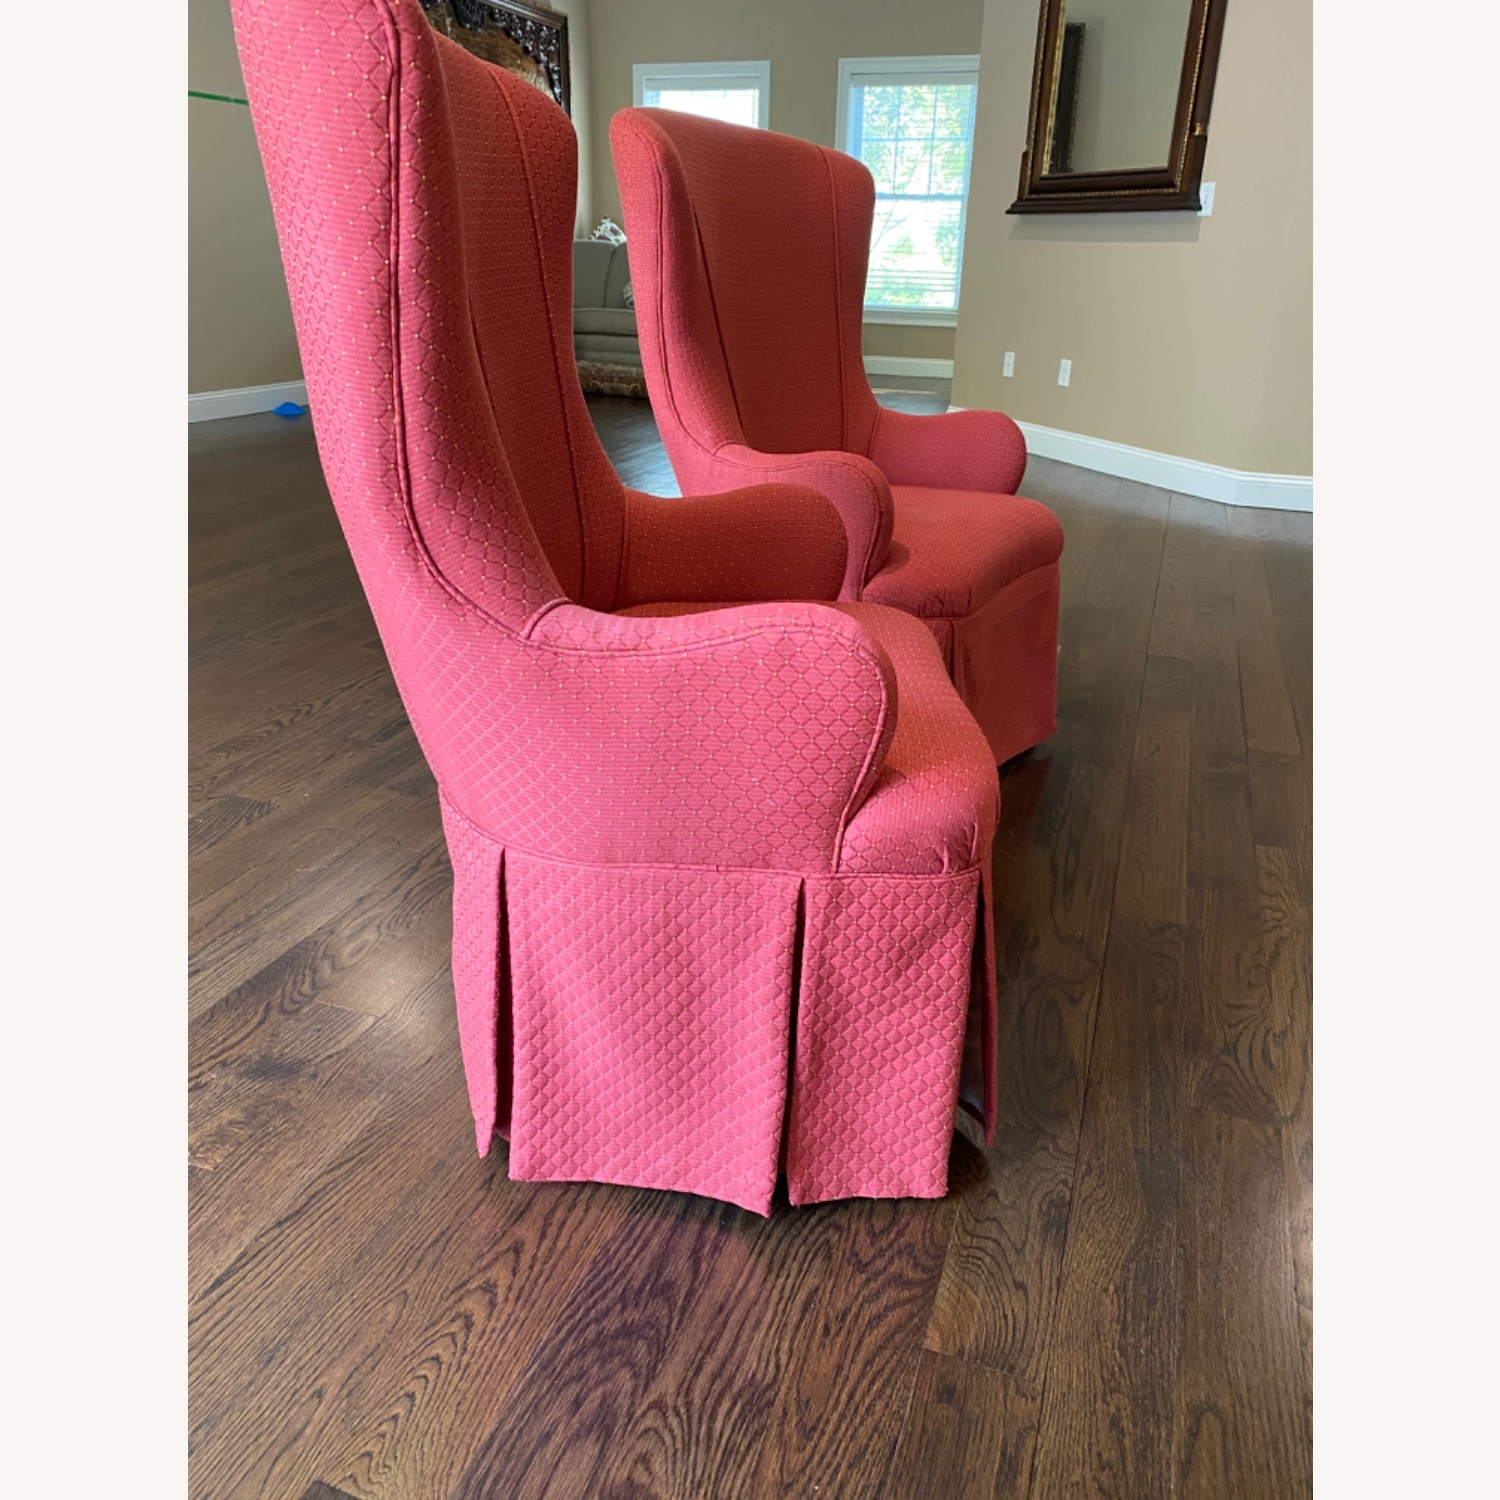 Thomasville Accent Chairs - image-3